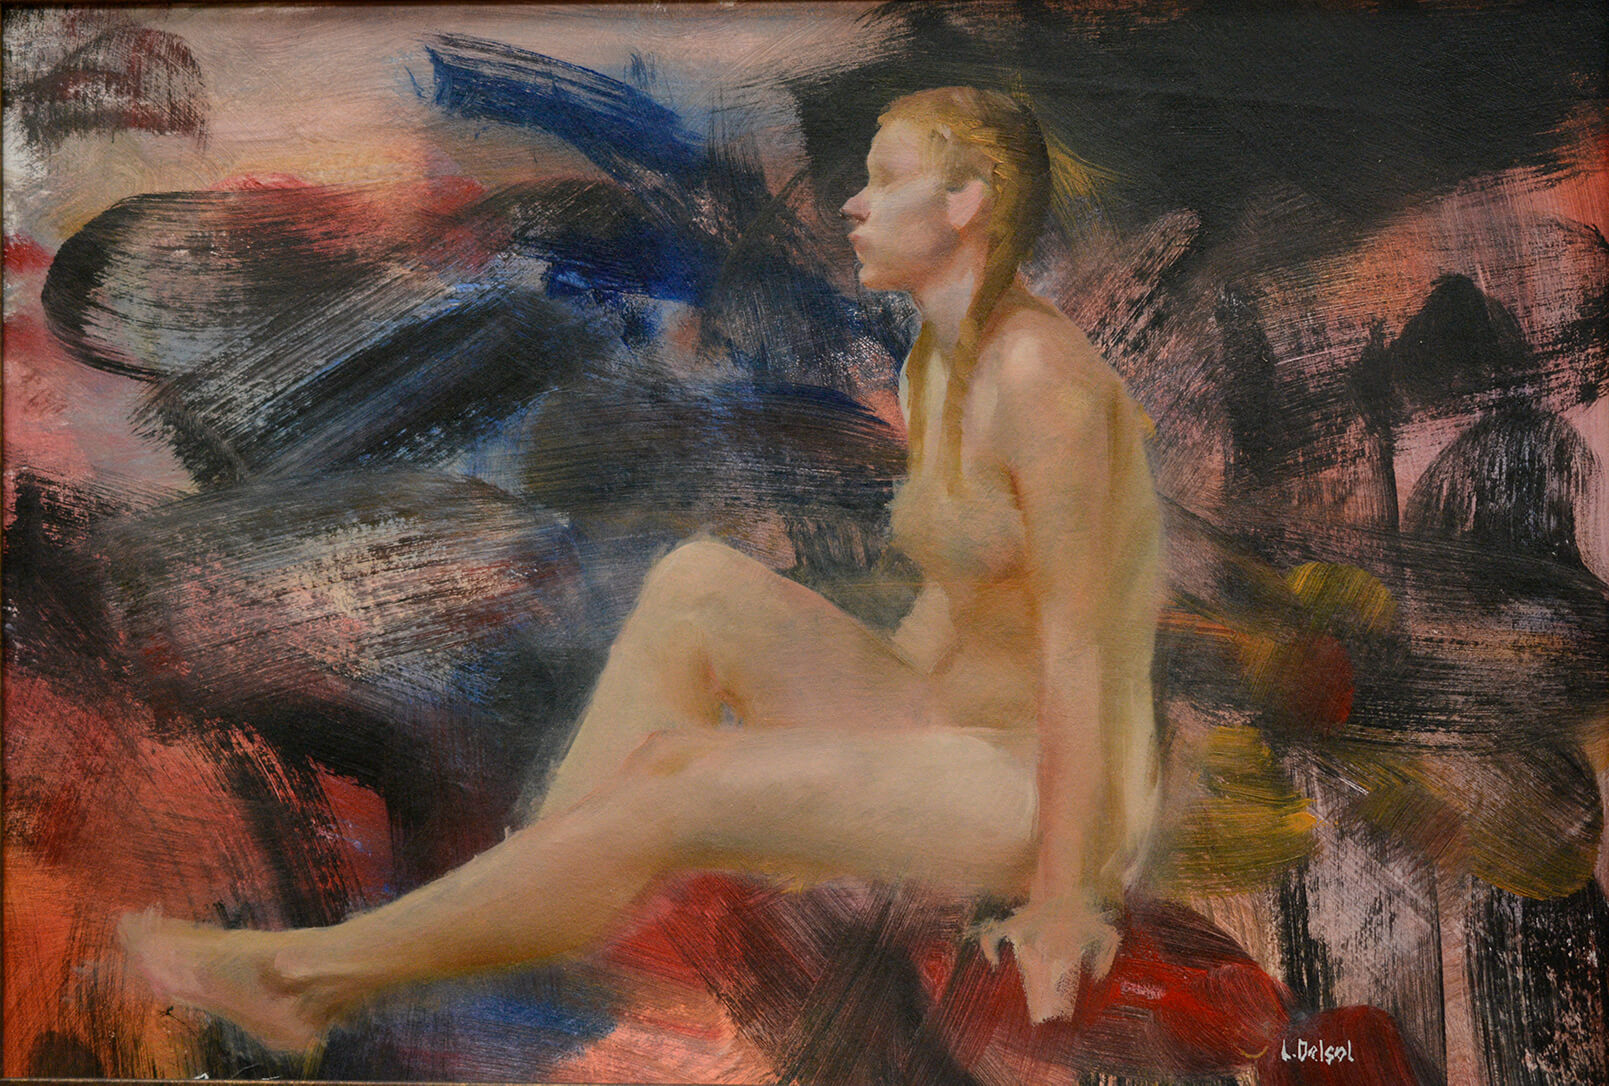 Gestural figurative oil of a sitting nude woman in profile on a background of expressive and colorful brush strokes